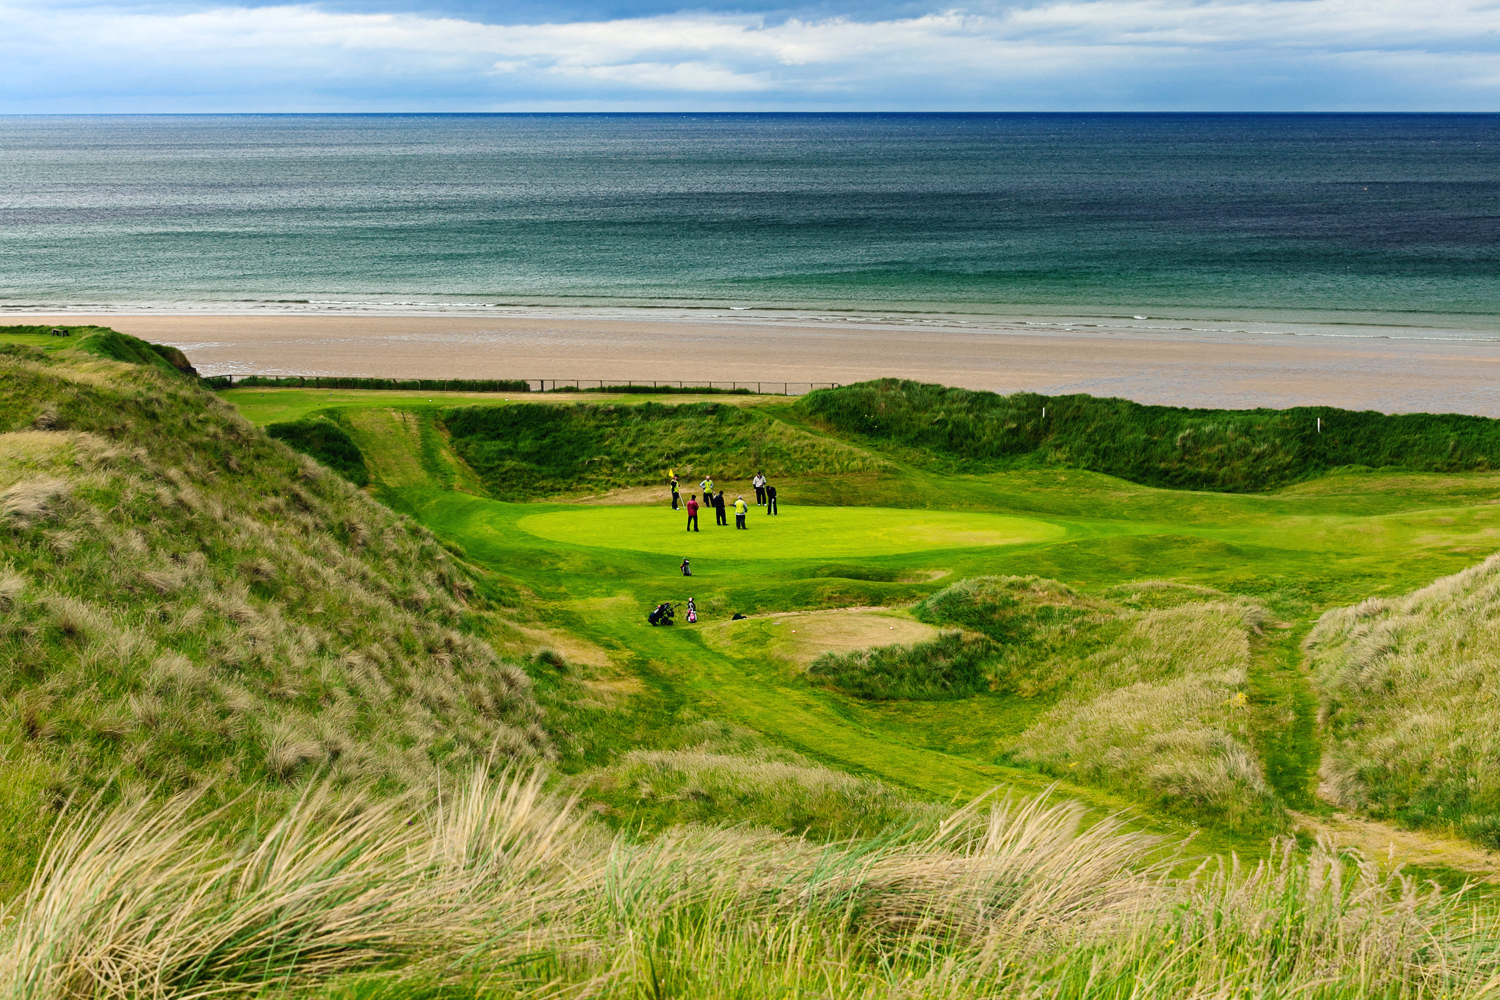 Golfers-at-the-Devils-Elbow-Hole-17-of-The-Old-Course,-Ballybunion-Golf-Course